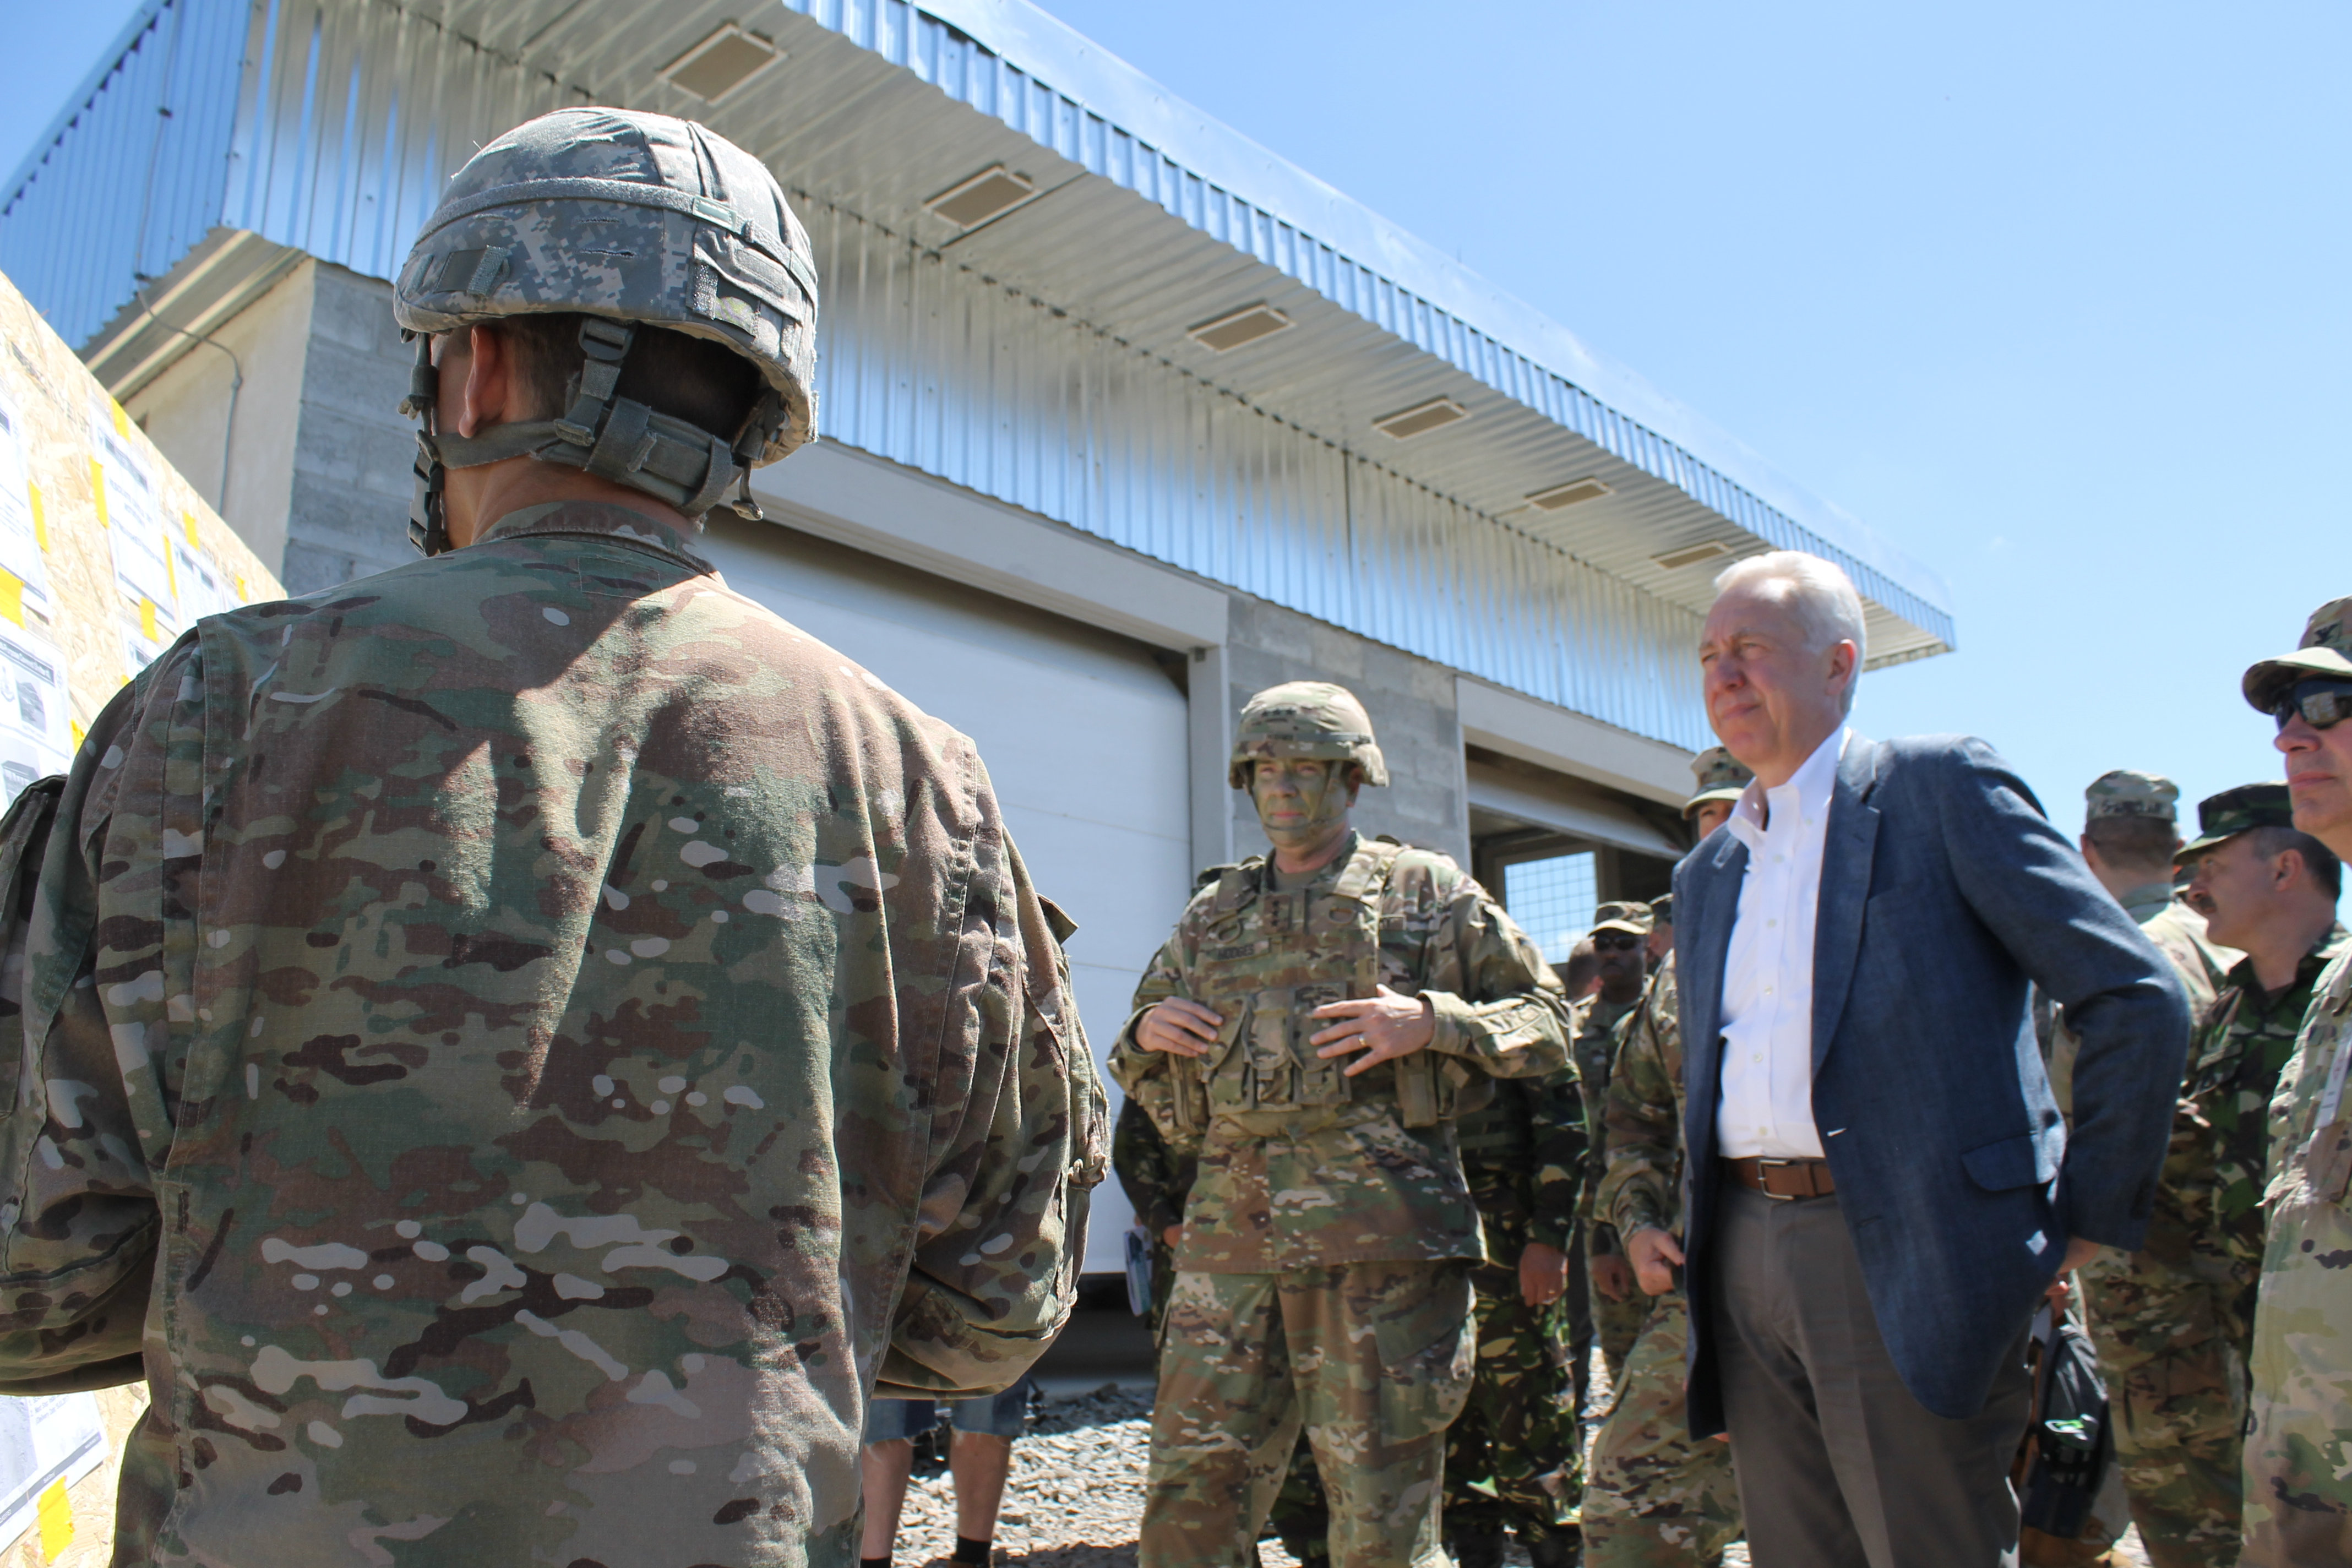 Lt. Gen. Ben Hodges and U.S. ambassador to Romania Hans Klemm listen to a briefing from a soldier from the 926th Engineer Brigade on the work the unit, comprised of National Guard and Reserve forces as well as British and Romanian soldiers, has been doing to build up the Joint National Training Center in Cincu, Romania, to include ammunition storage, a nonstandard live fire course for tanks with moving armored targets, a light demolition range and a sniper range. (Jen Judson/Staff)